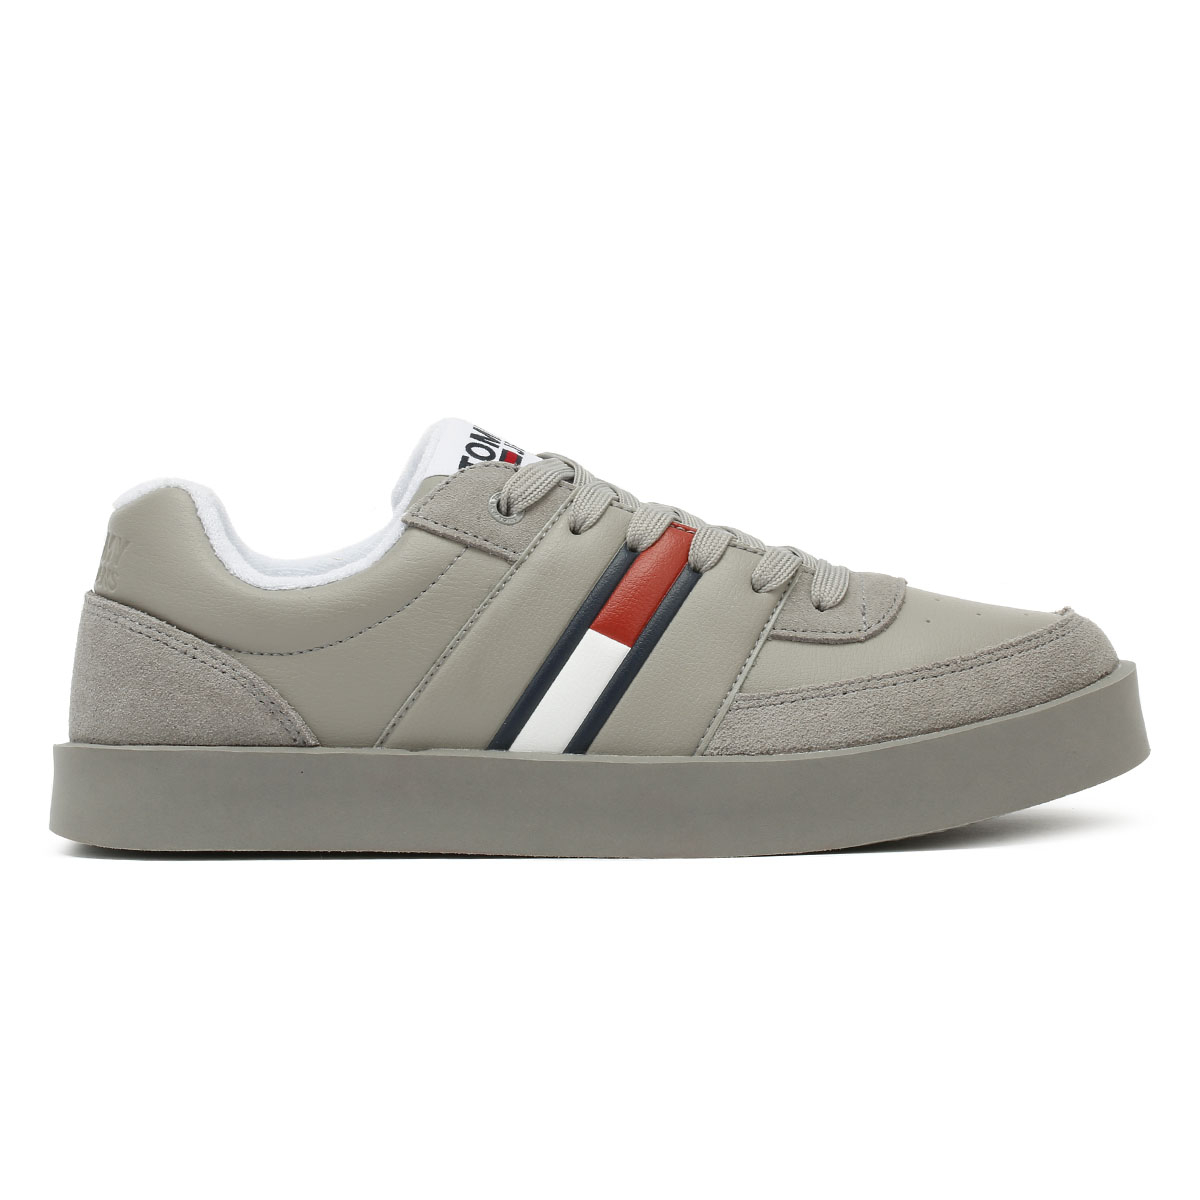 Tommy Hilfiger Jeans Light Mens Trainers Drizzle Grey Lace Up Sport Casual Shoes Herrenschuhe Kleidung & Accessoires